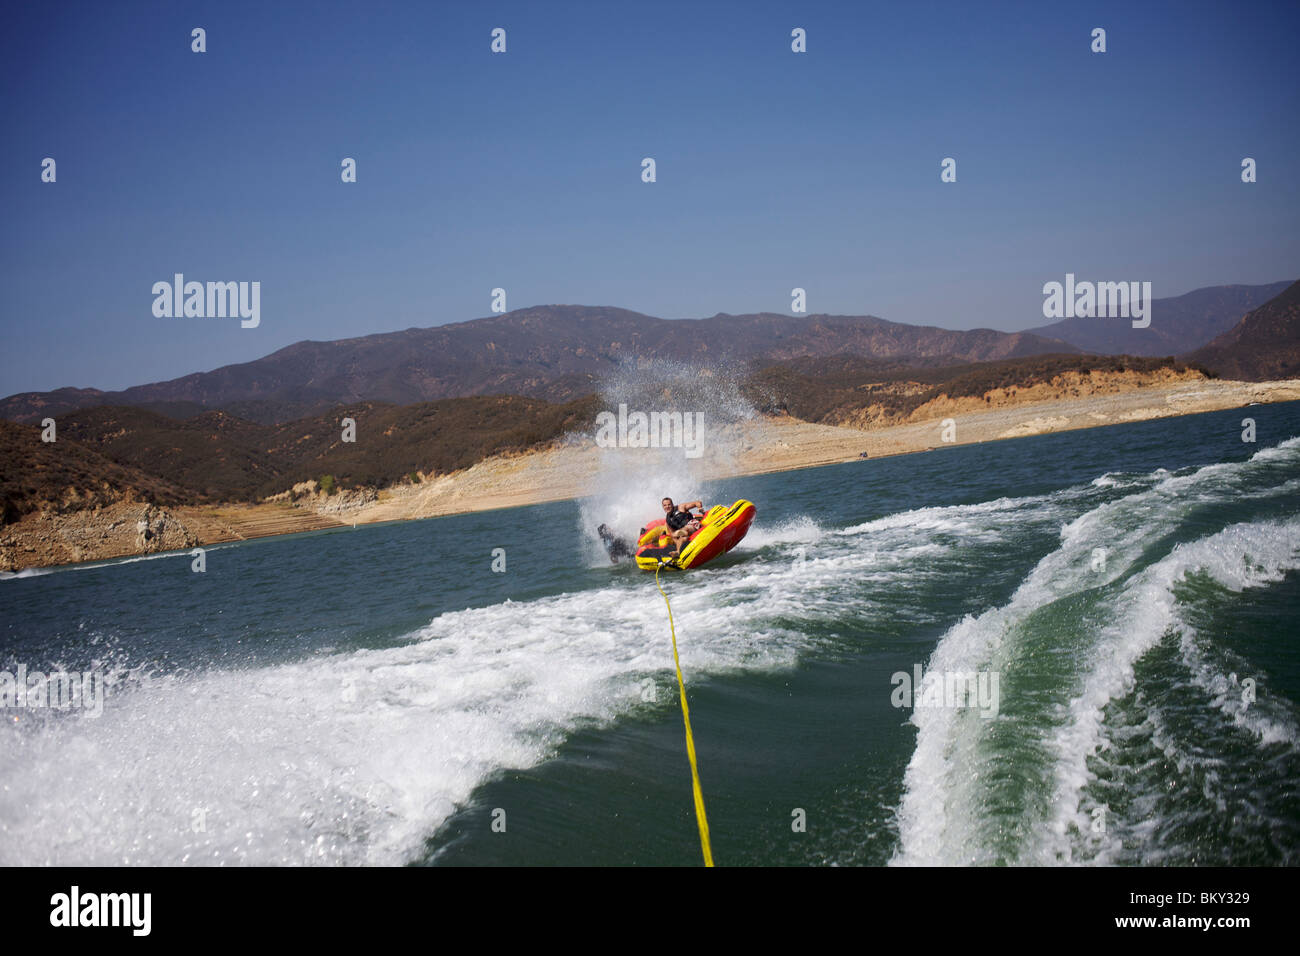 People tubing in Castaic Lake, Santa Clarita, California are about to flip over. - Stock Image